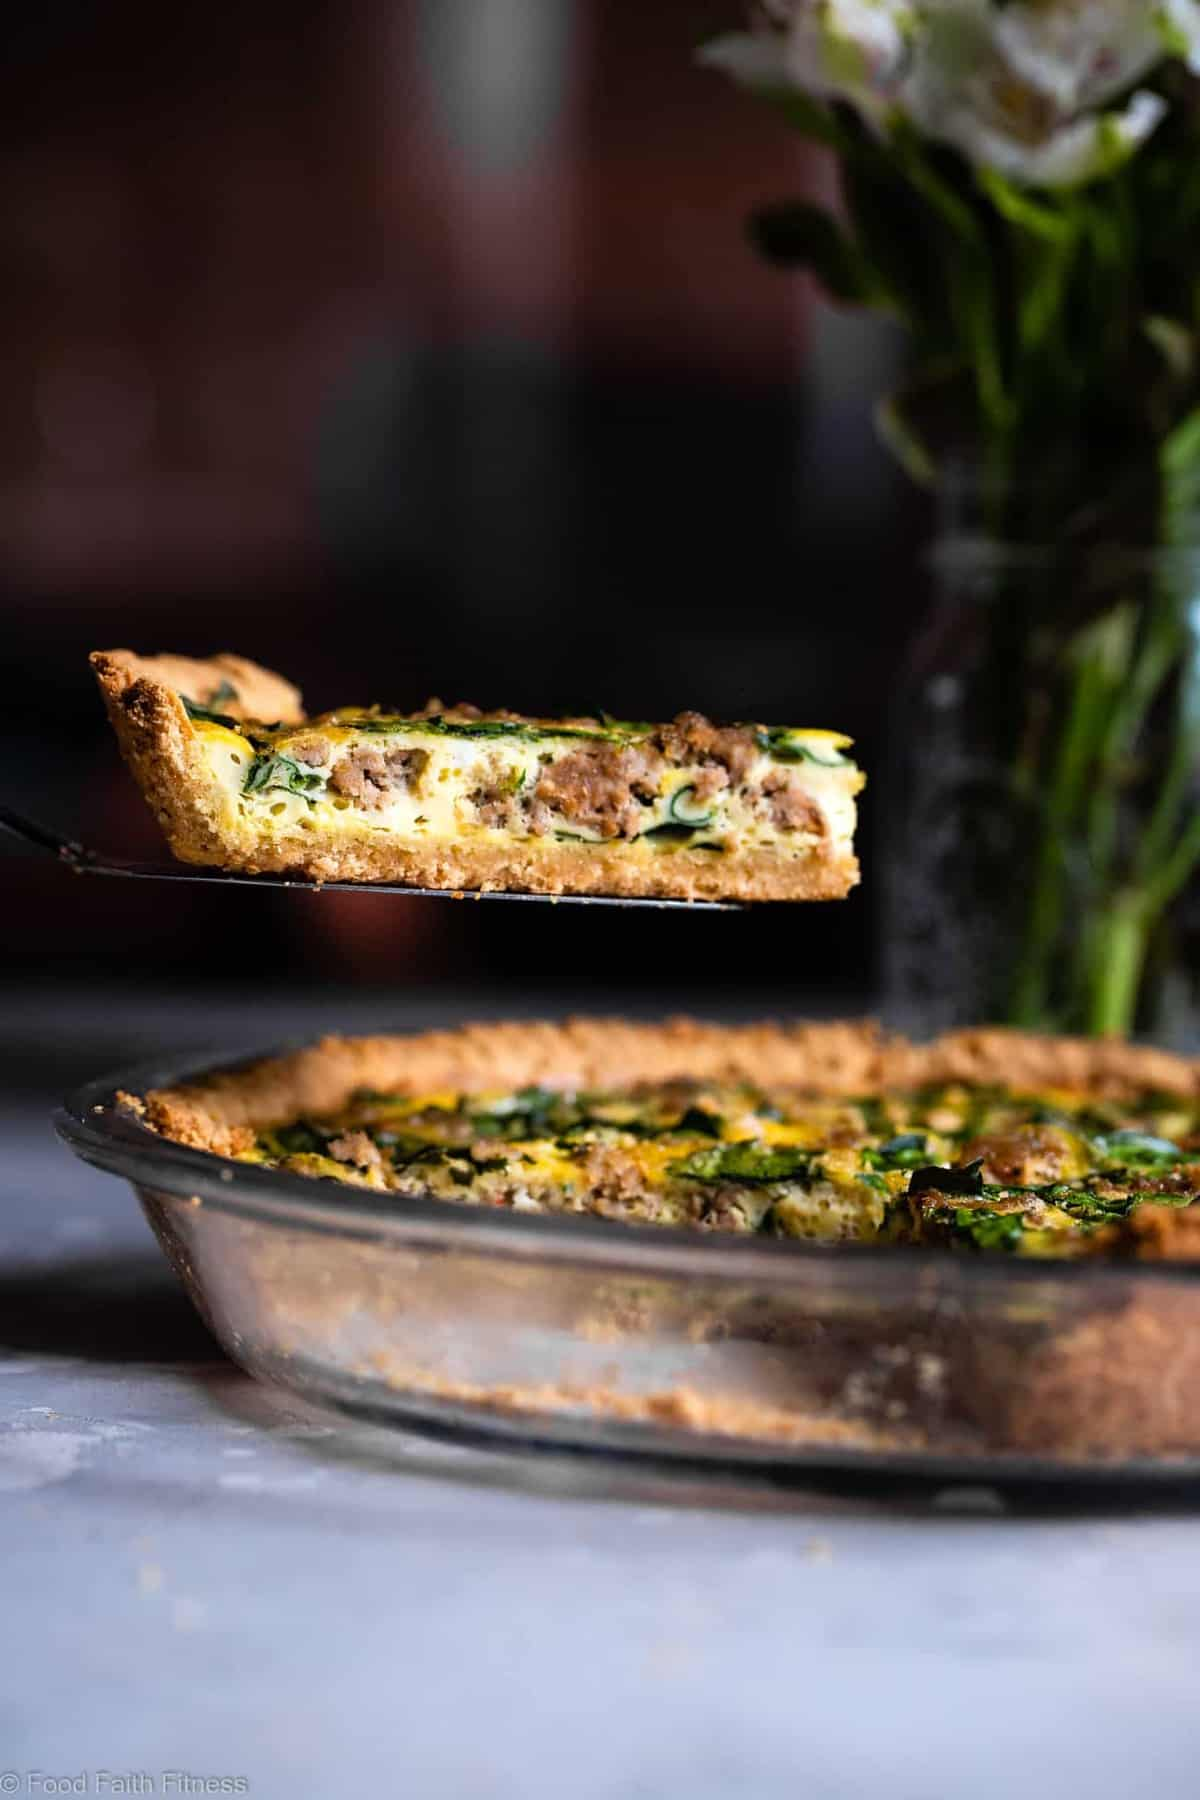 Gluten Free Low Carb Quiche -This EASY dairy free and paleolow carb spinach Quiche has a homemade, buttery, flaky Almond Flour Crust! Sausage, spinach and eggs make a high protein, filling breakfast! Great for meal prep! | #Foodfaithfitness | #Glutenfree #Lowcarb #Keto #paleo #dairyfree